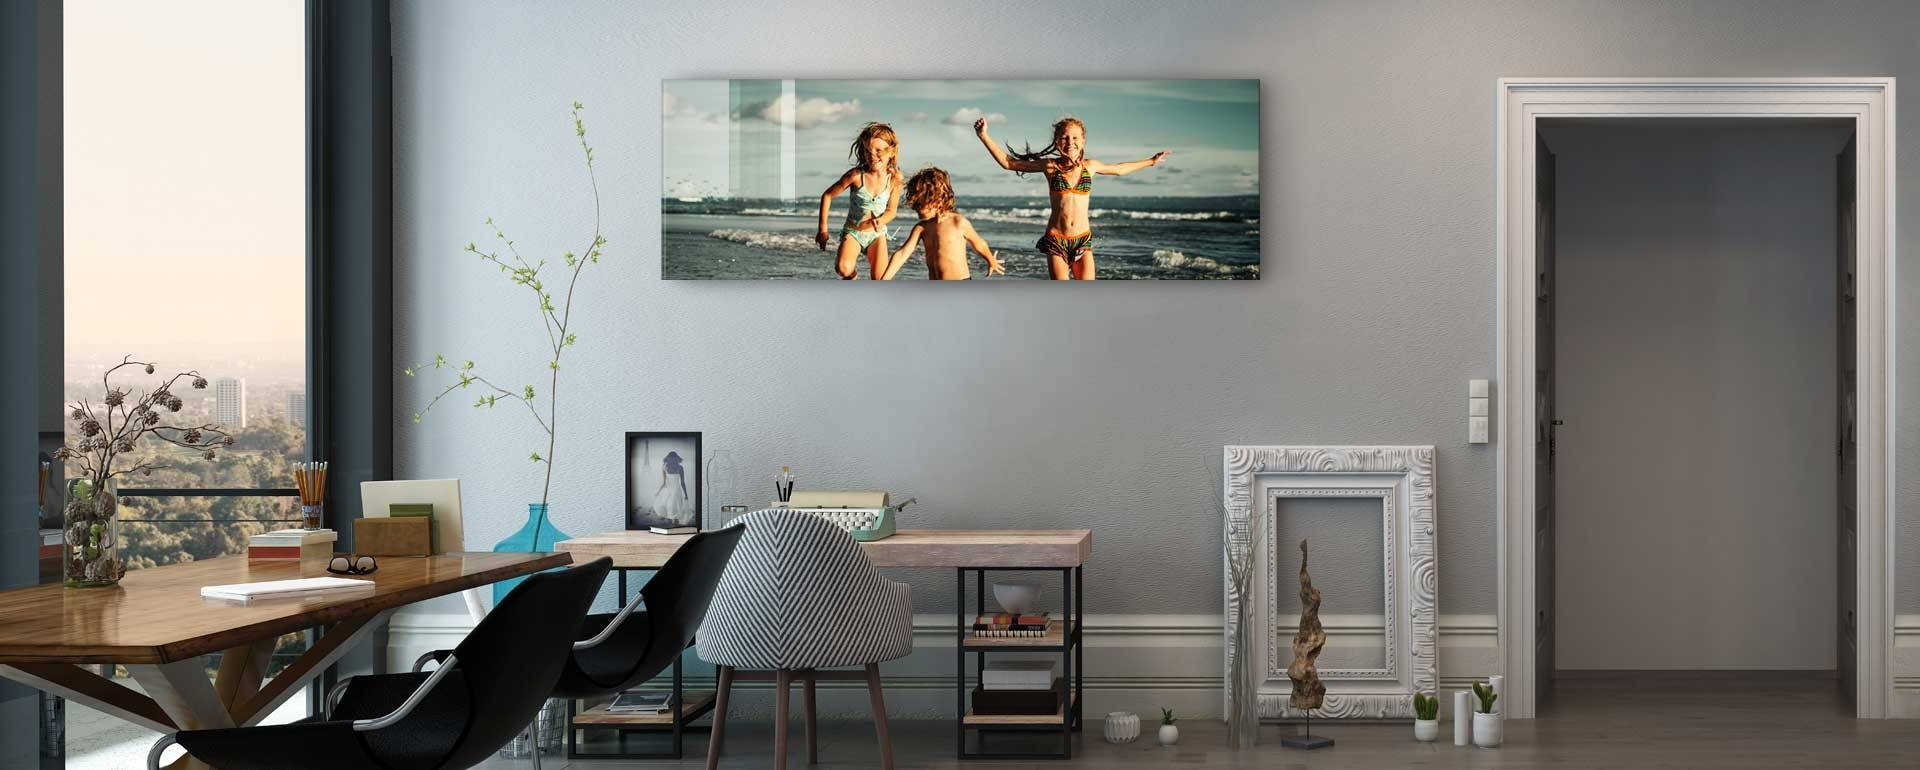 Online Digital Glass Screen Large Photo Printing | Picture Prints With Most Current Glass Wall Artworks (Gallery 14 of 15)